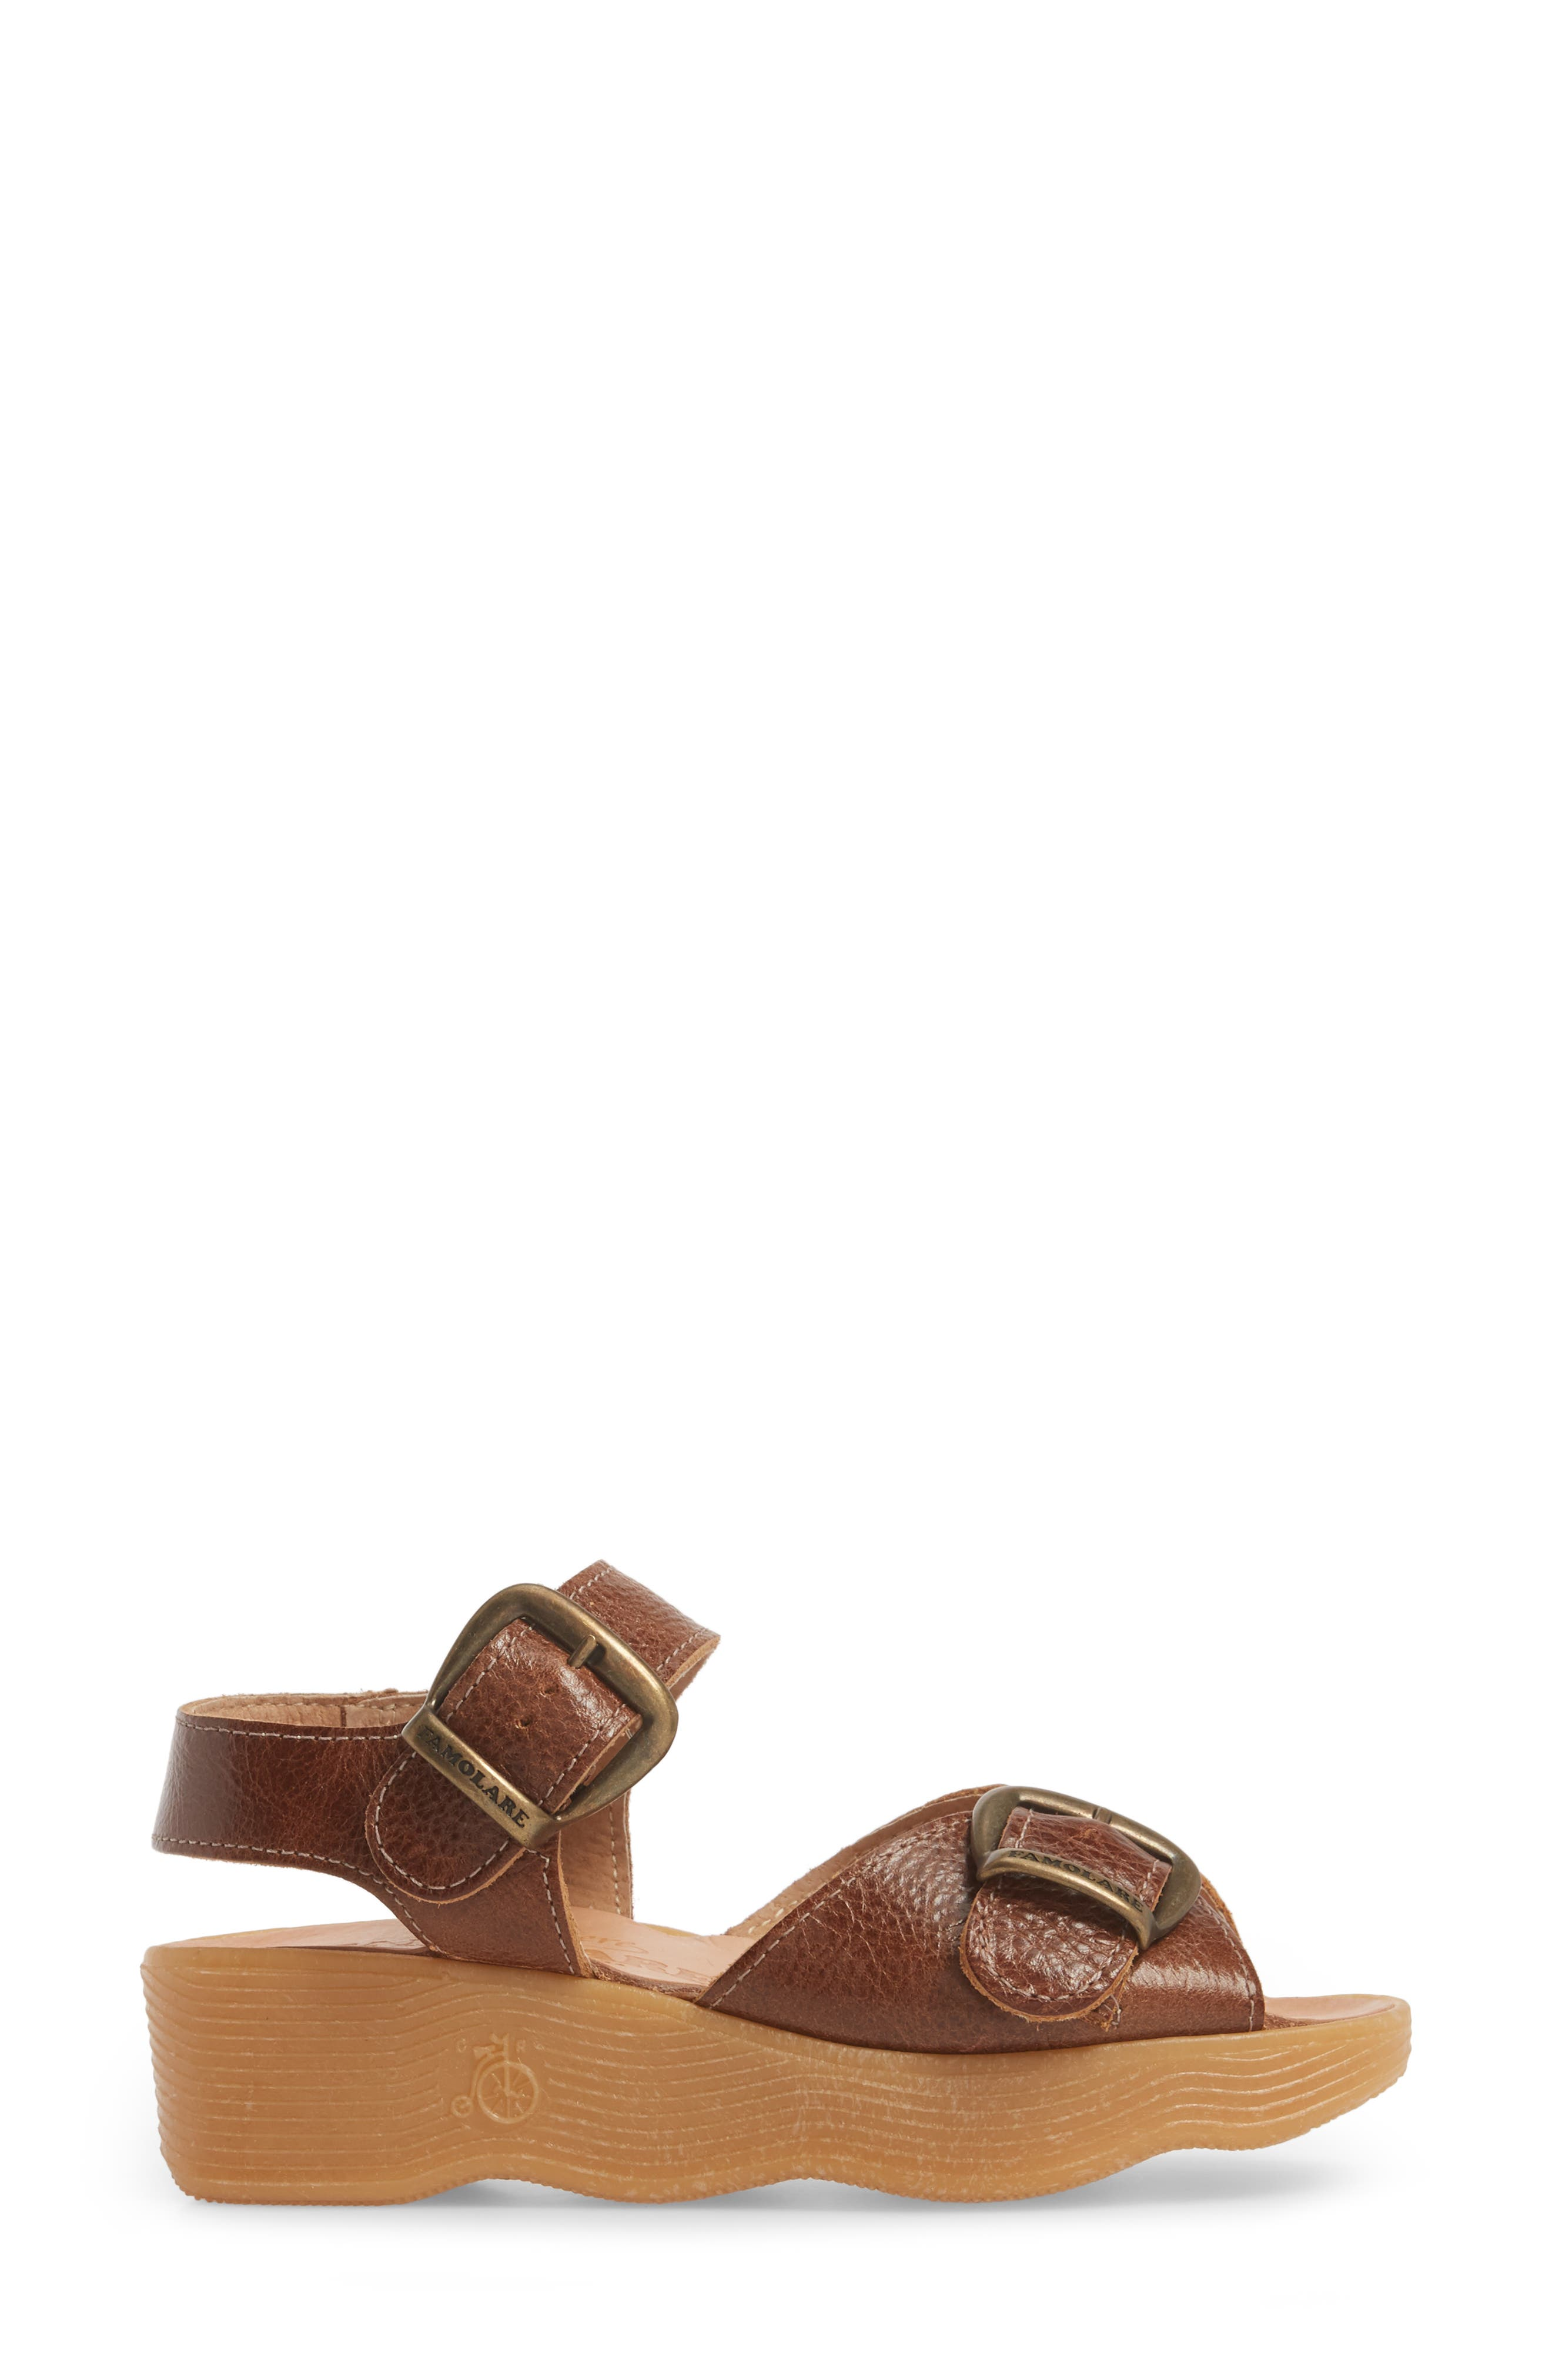 Double Play Platform Sandal,                             Alternate thumbnail 3, color,                             Earth Leather